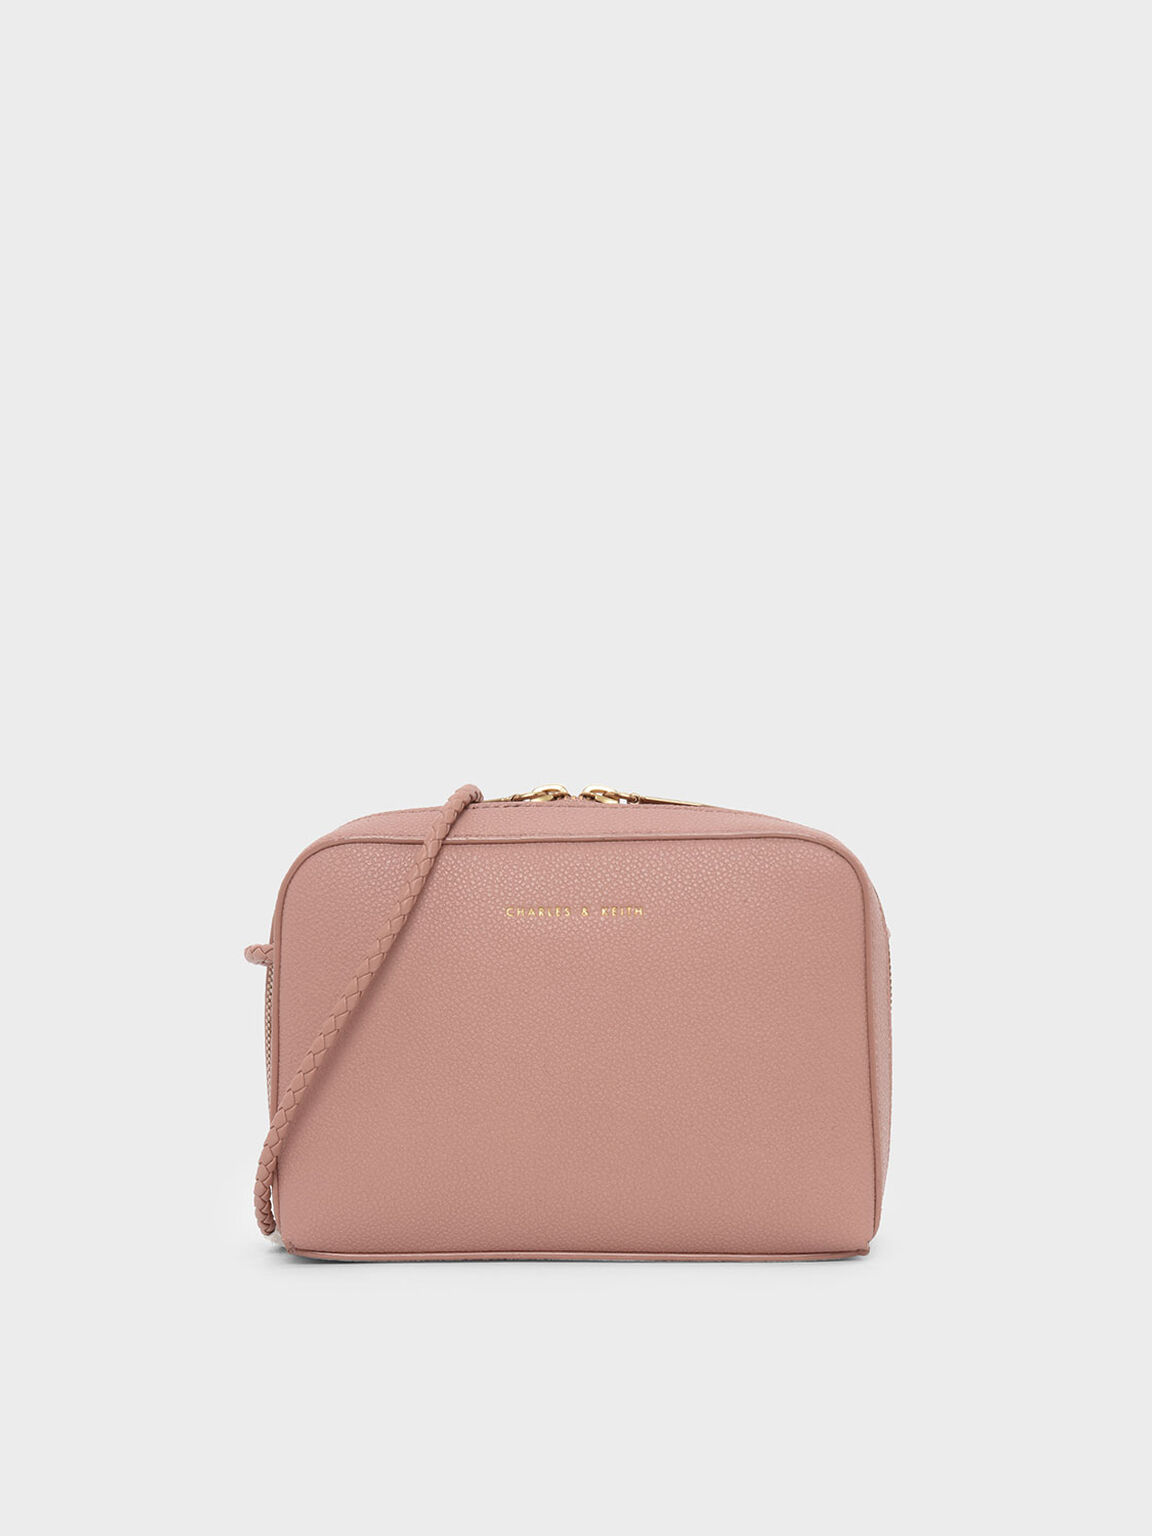 Small Crossbody Bag, Blush, hi-res